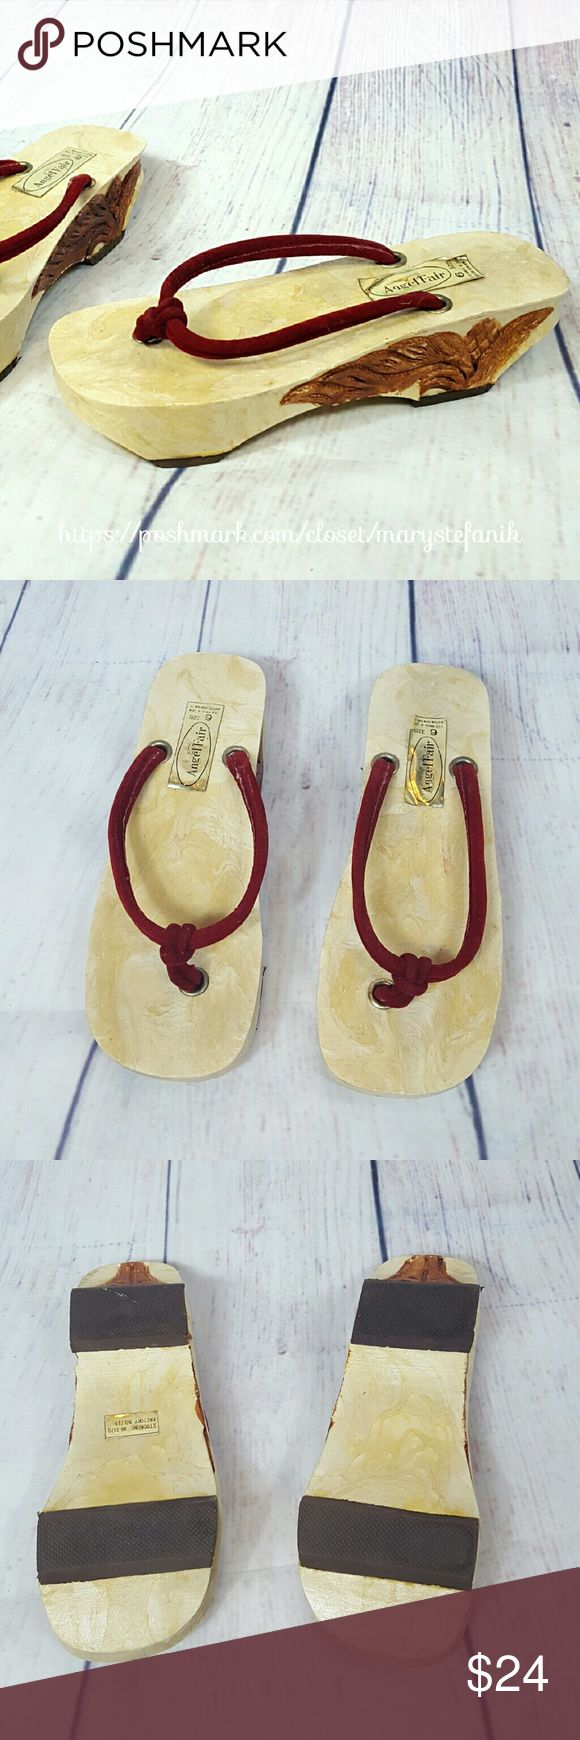 """VINTAGE 70s Faux Wood Platform Flip Flops 9 VINTAGE 70s Faux Wood Platform Flip Flops size 9. Very unique. They feel like a wood composite material. Like new. These seem to fit more like a size 8.5. Please check the measurements. Measures 2"""" high, 10"""" long, 3.5"""" wide.  Please let me know if you have any questions. Happy Poshing! Vintage Shoes Sandals"""